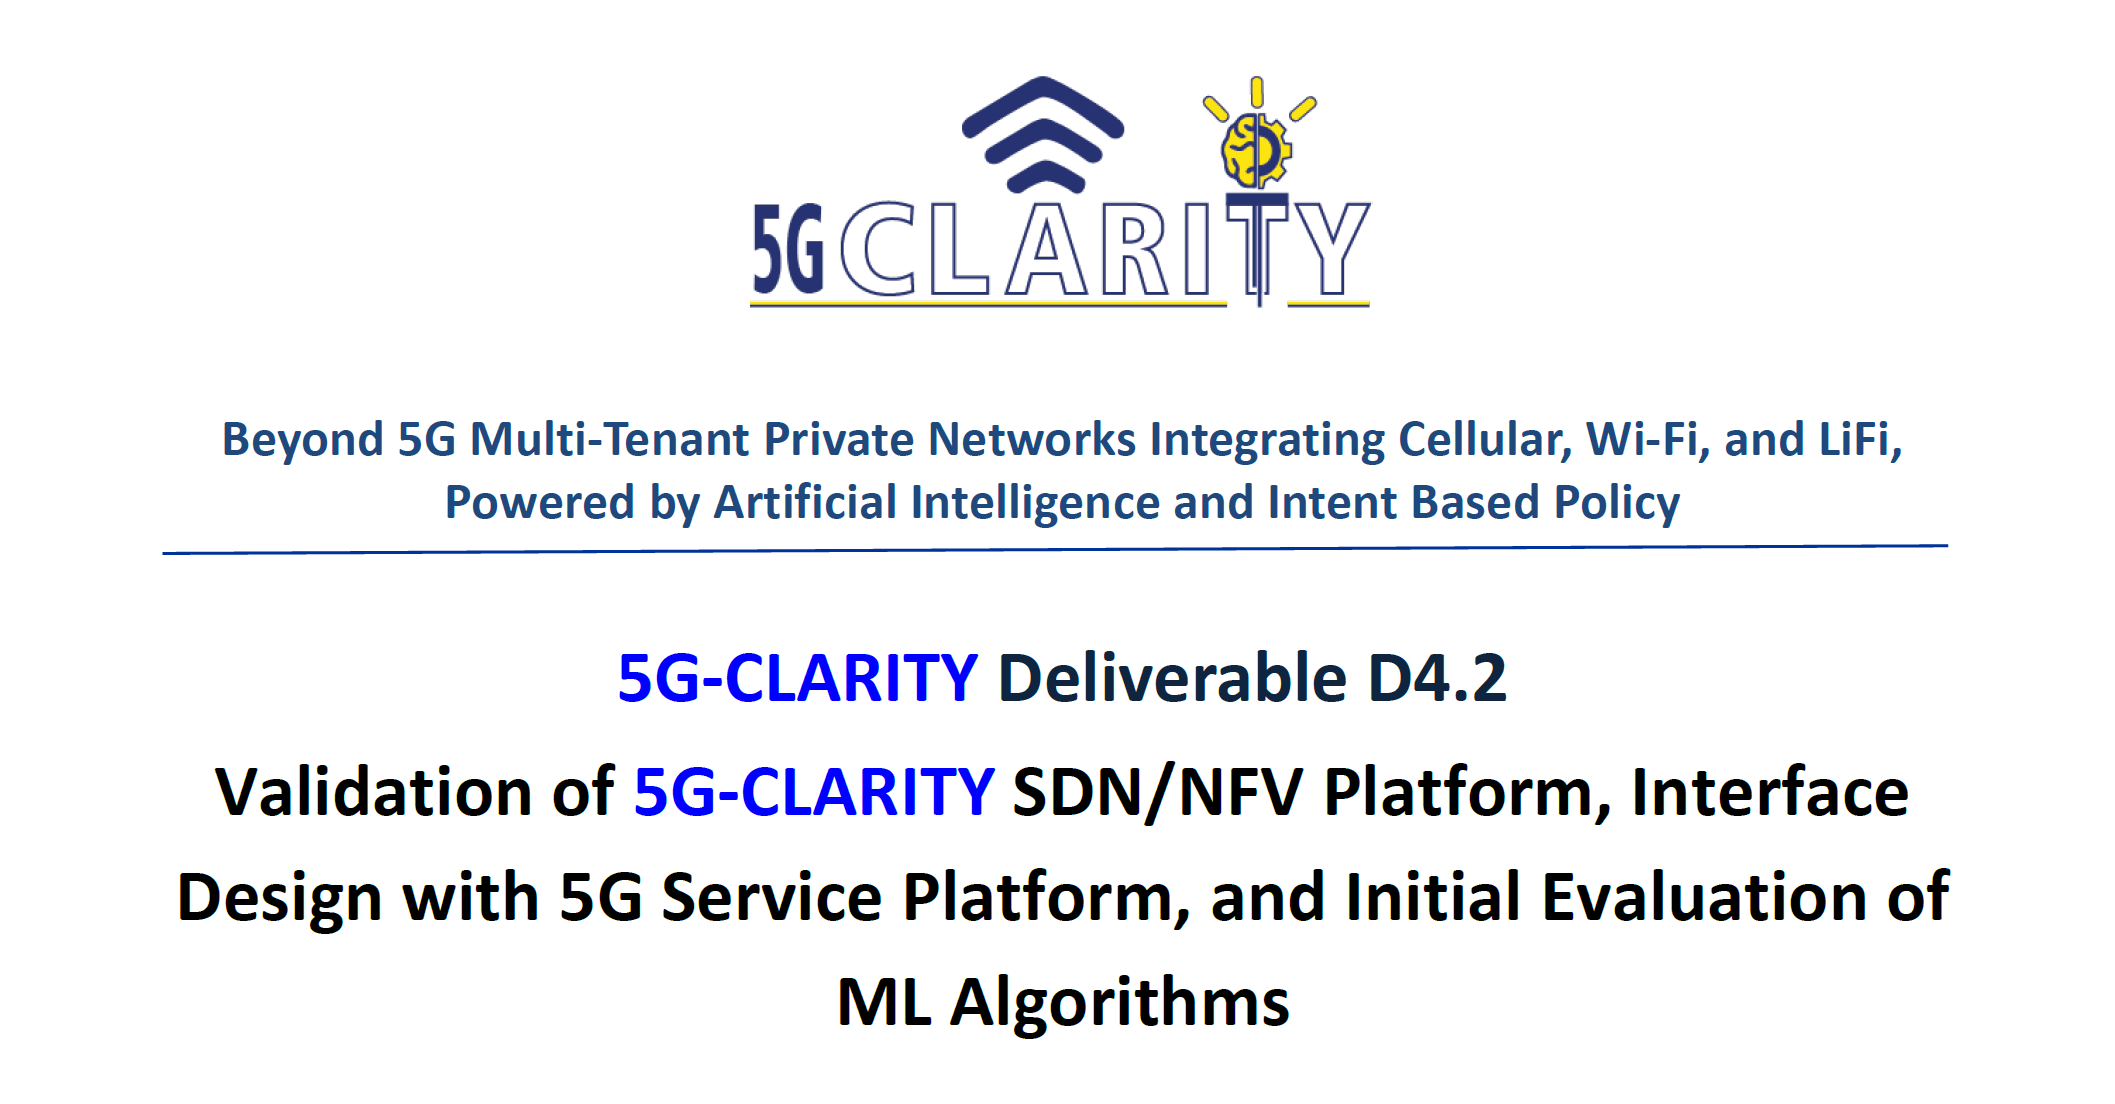 5G-CLARITY D4.2 was submitted and uploaded to the website!